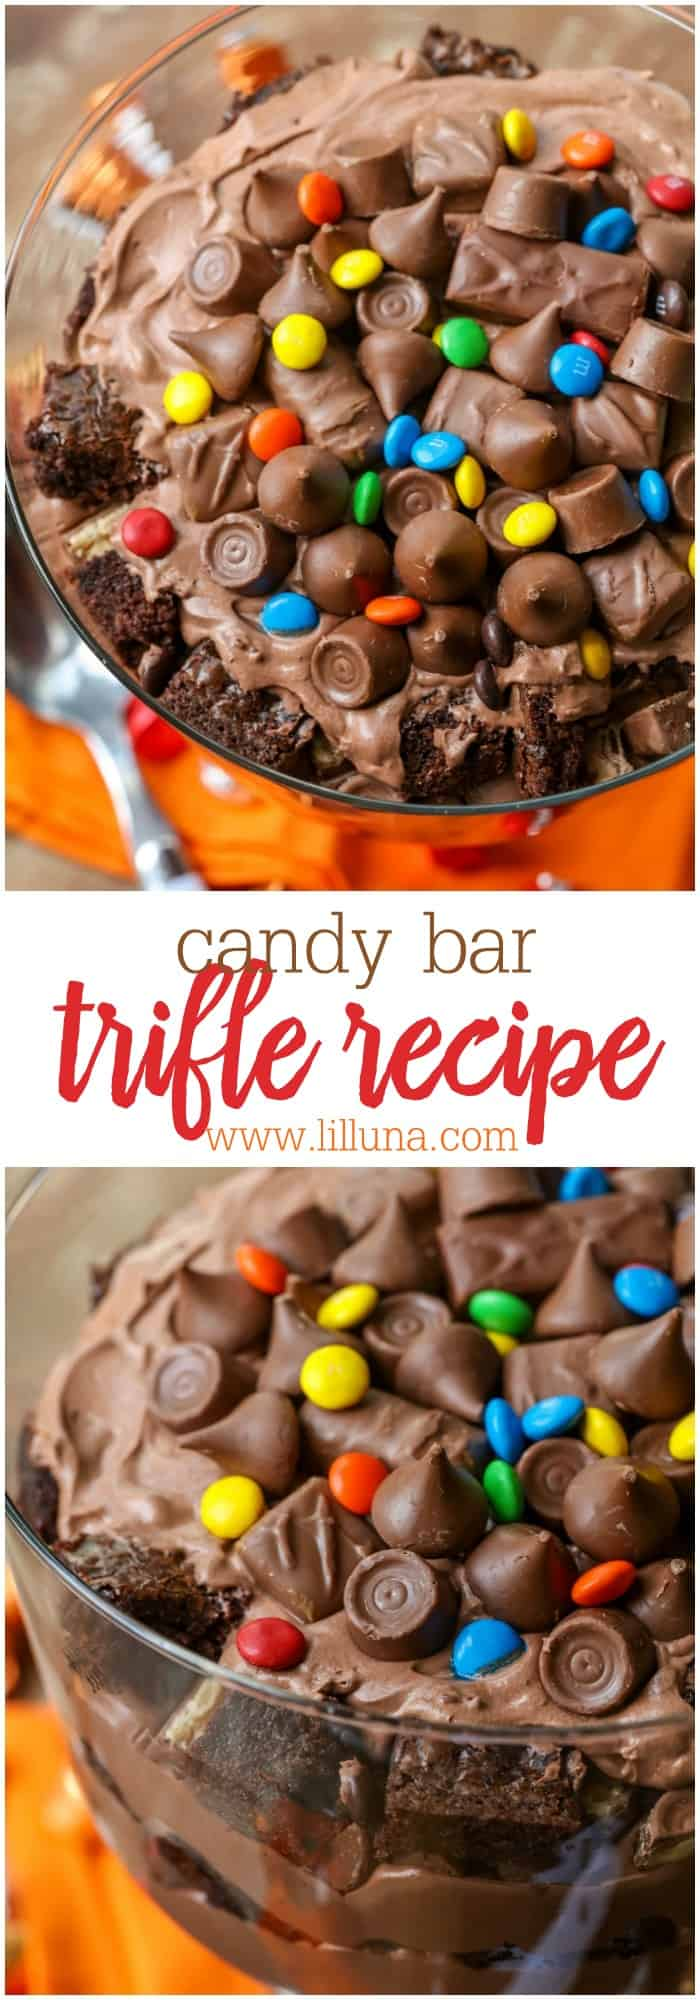 Candy bar trifle